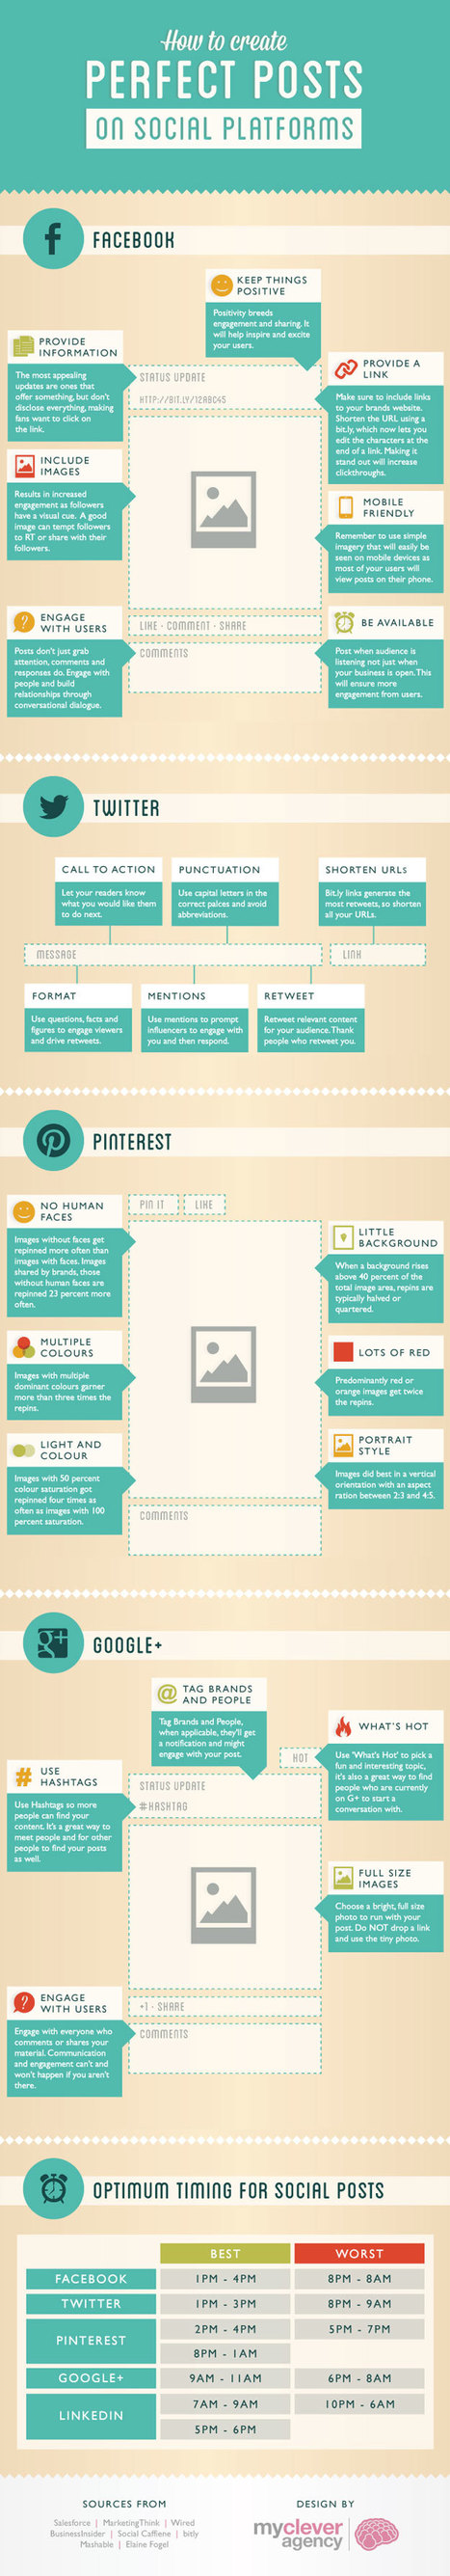 How To Create Effective Posts on the 4 Main Social Sites [Infographic] | Social Media | Scoop.it